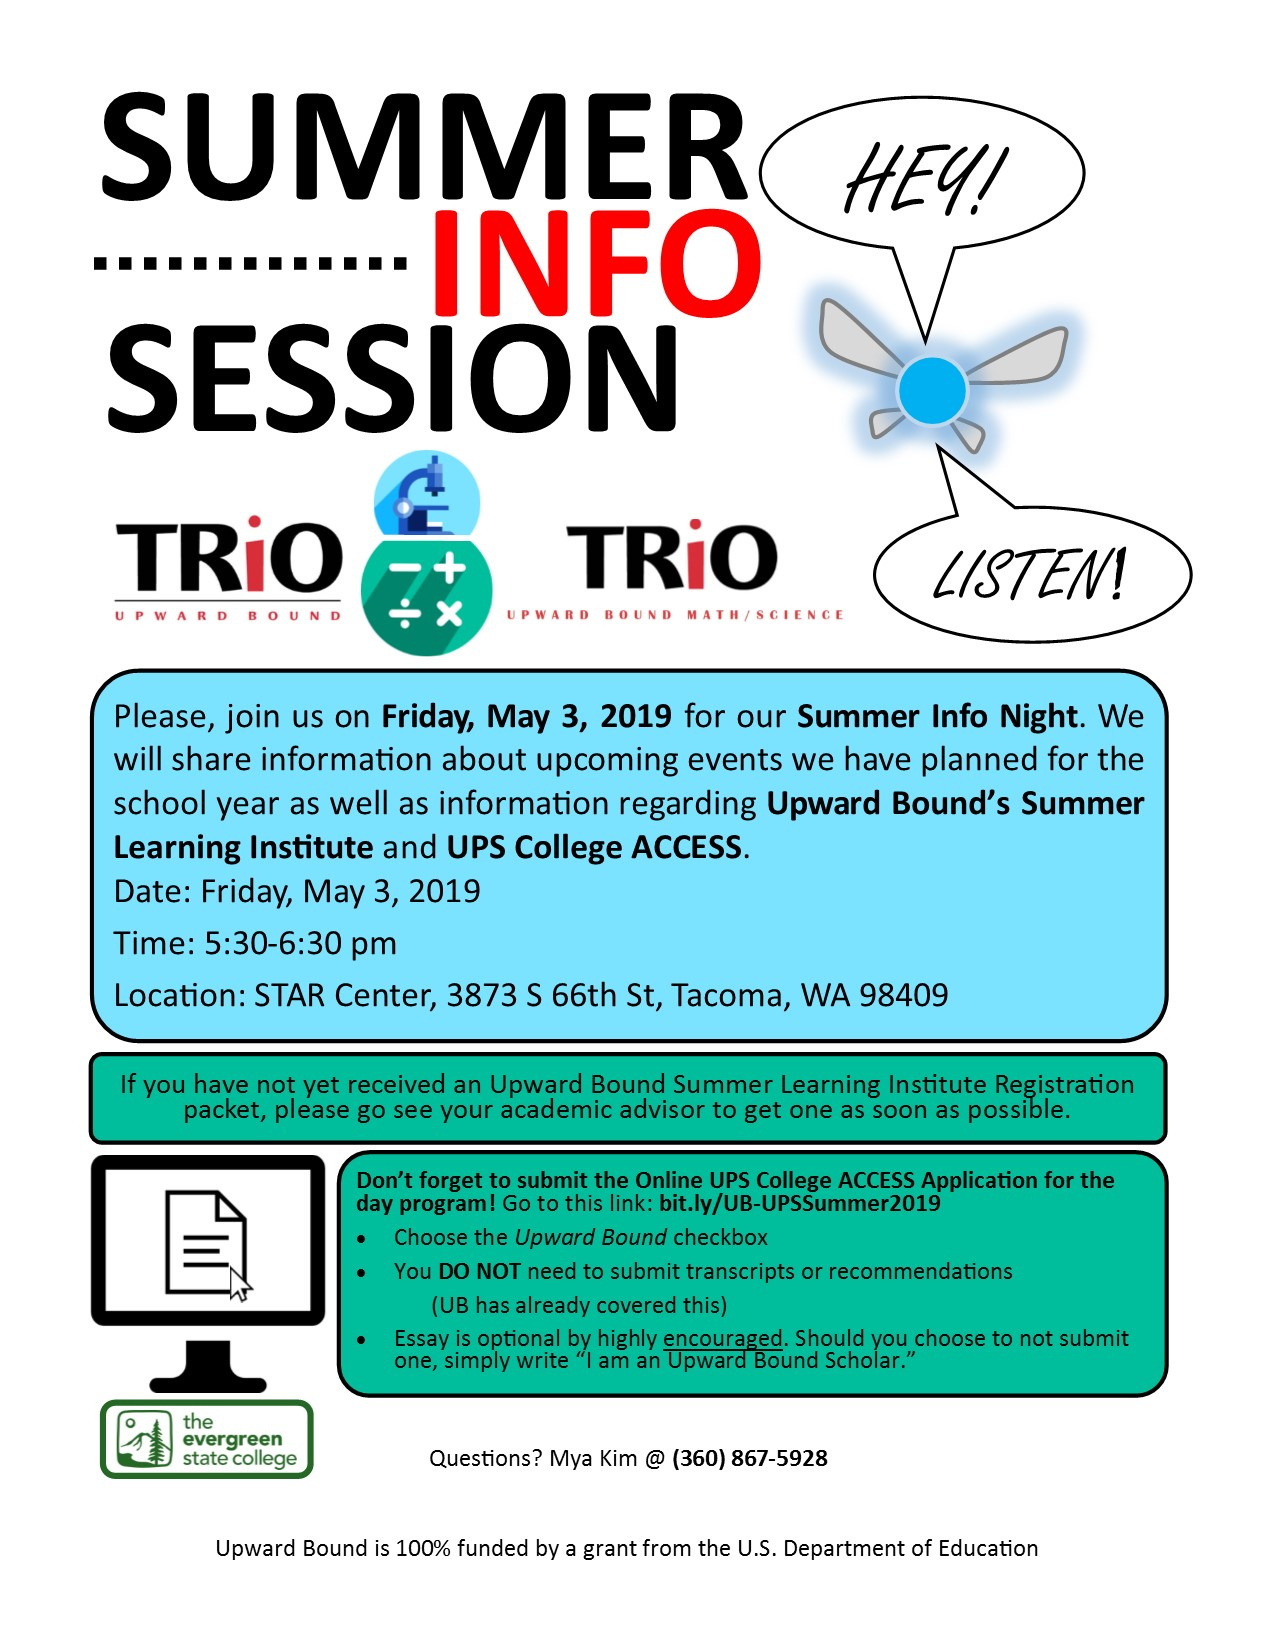 5-3-19 Information Night Flyer jpg | The Evergreen State College